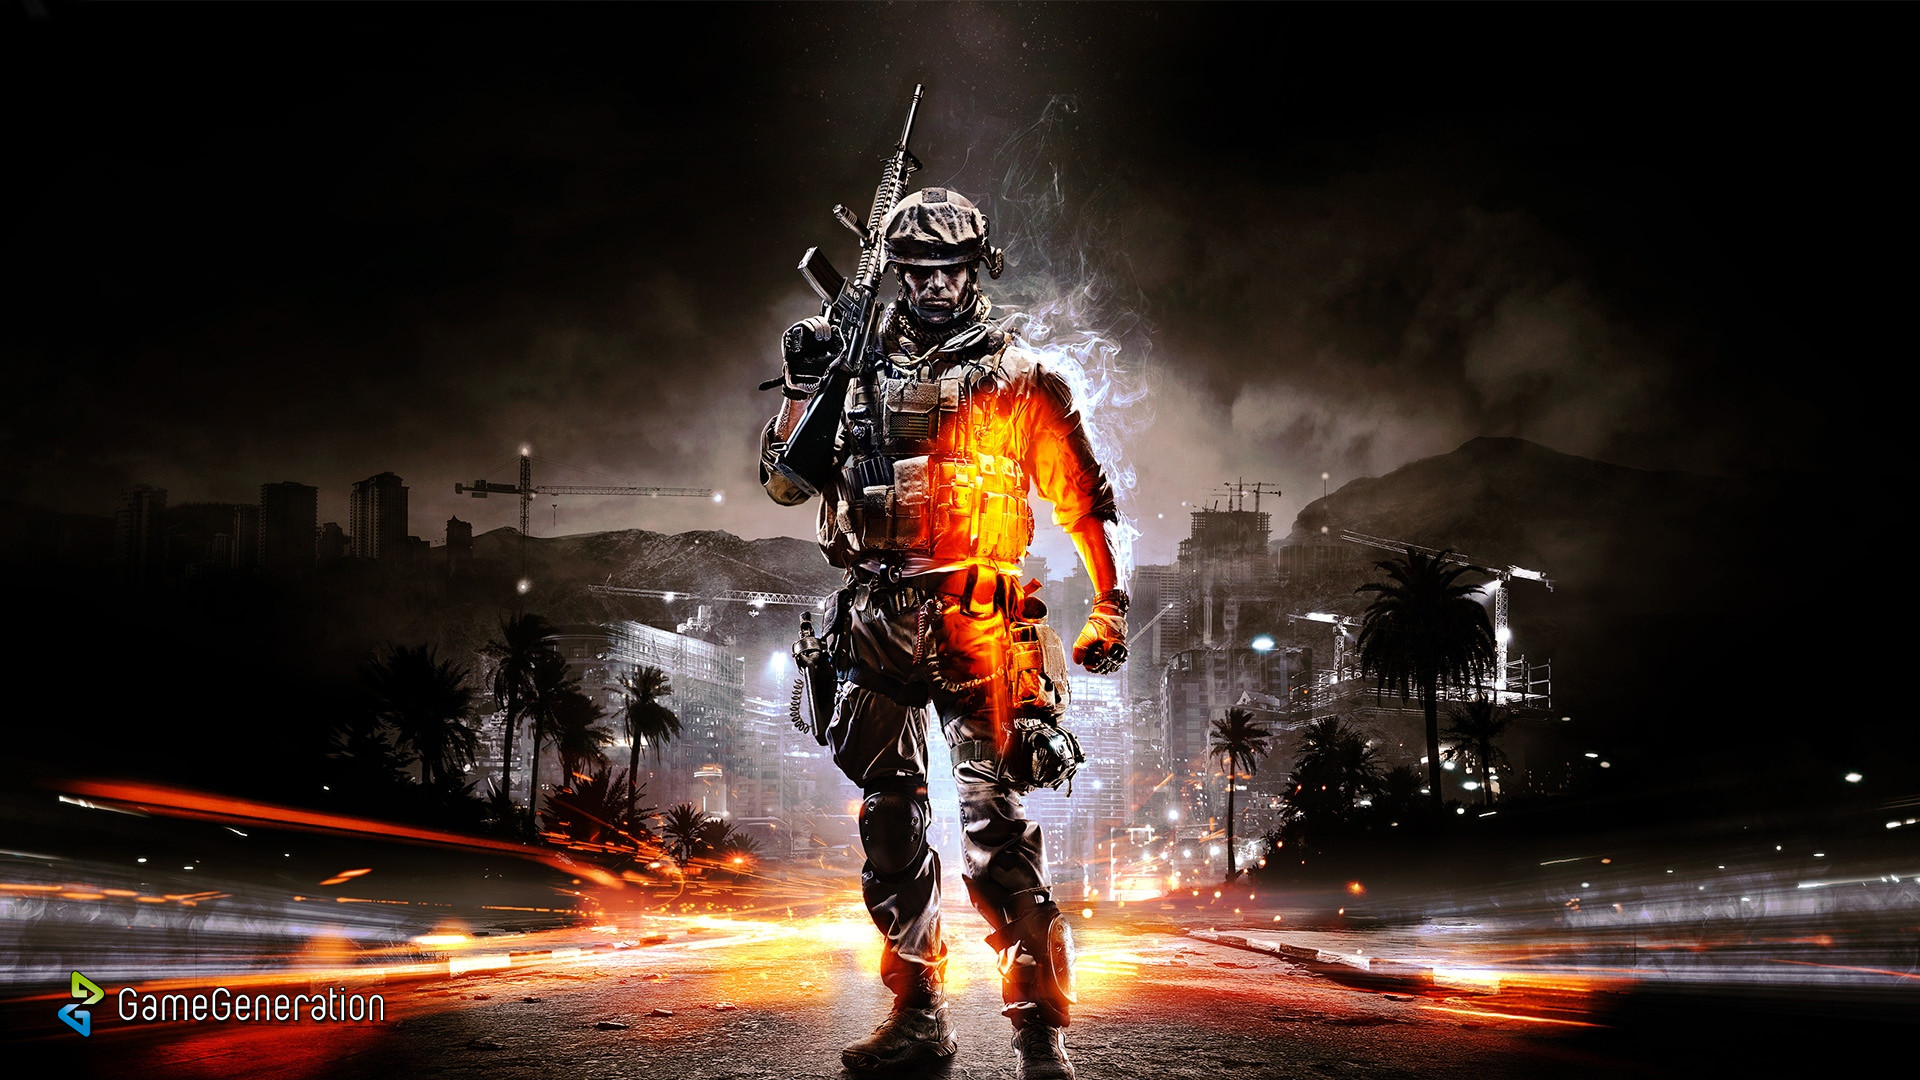 Res: 1920x1080, Battlefield 3 Best Quality Wallpapers 17232 - Amazing Wallpaperz